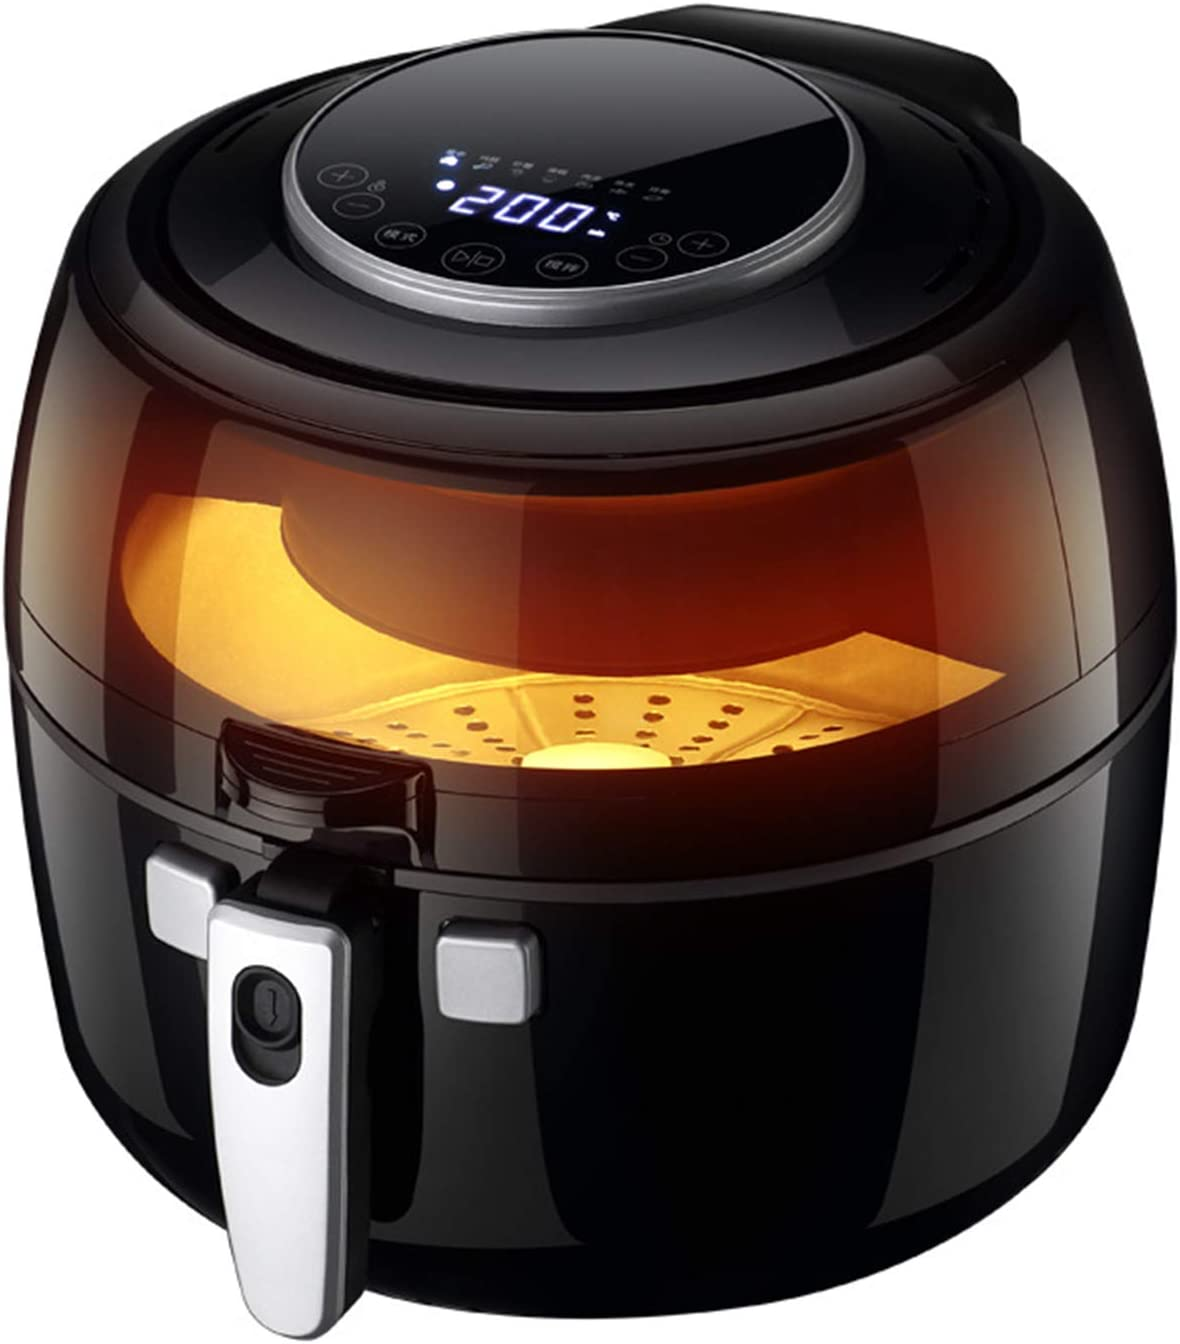 Household Electric Air Fryer, 6.5L Large Capacity LCD Touch Screen Oil-Free Electric Fryer, with Visible Window, for Low-Fat Cooking